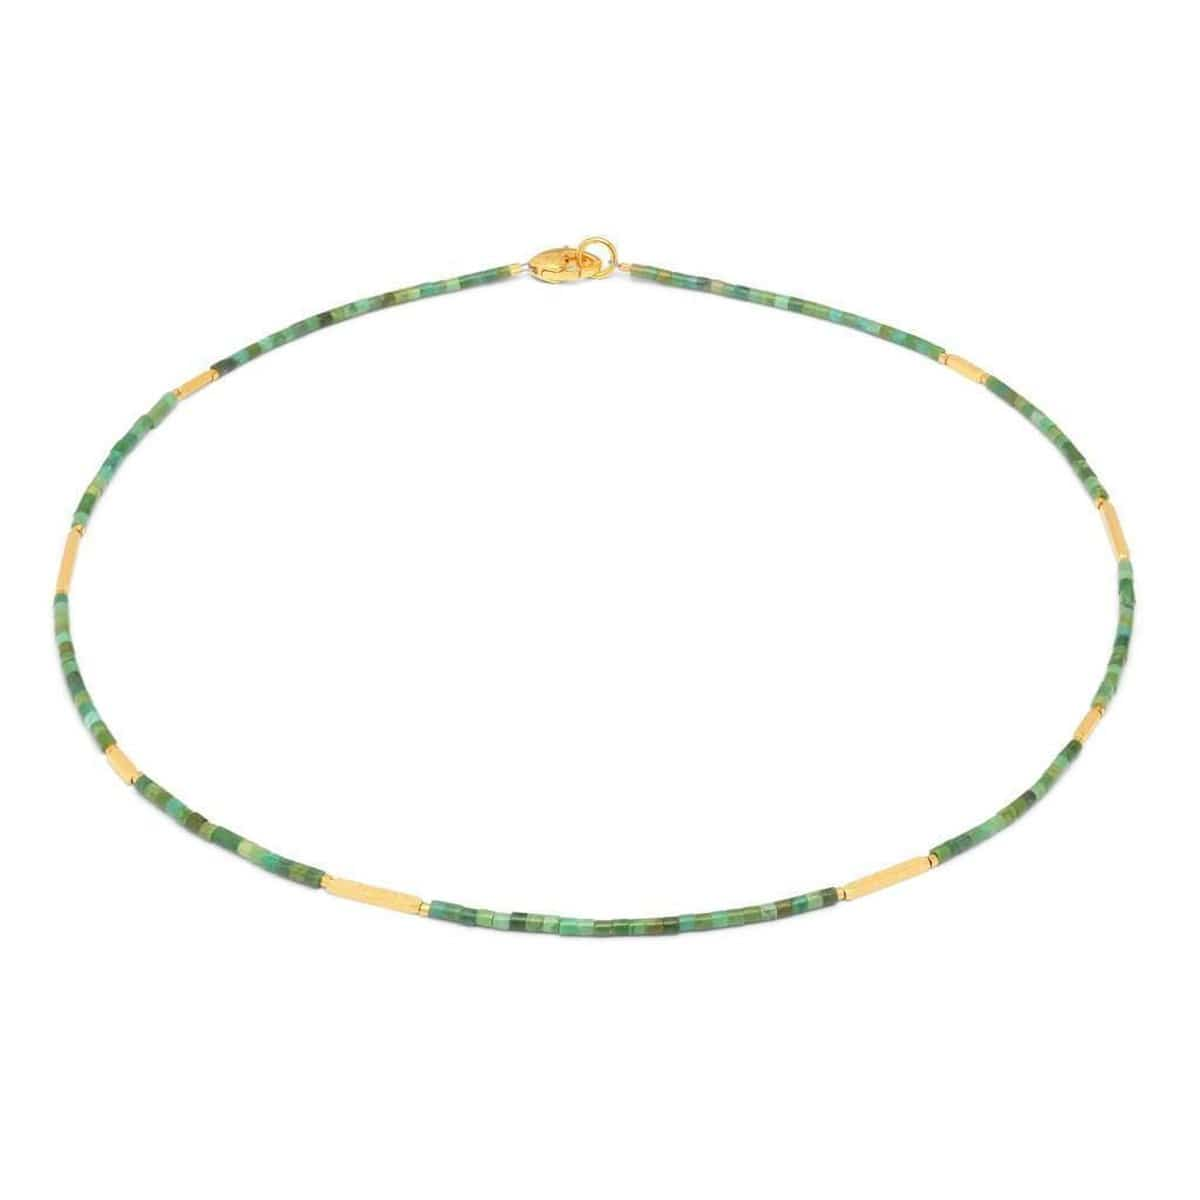 Facella Green Turquoise Necklace - 83924356-Bernd Wolf-Renee Taylor Gallery